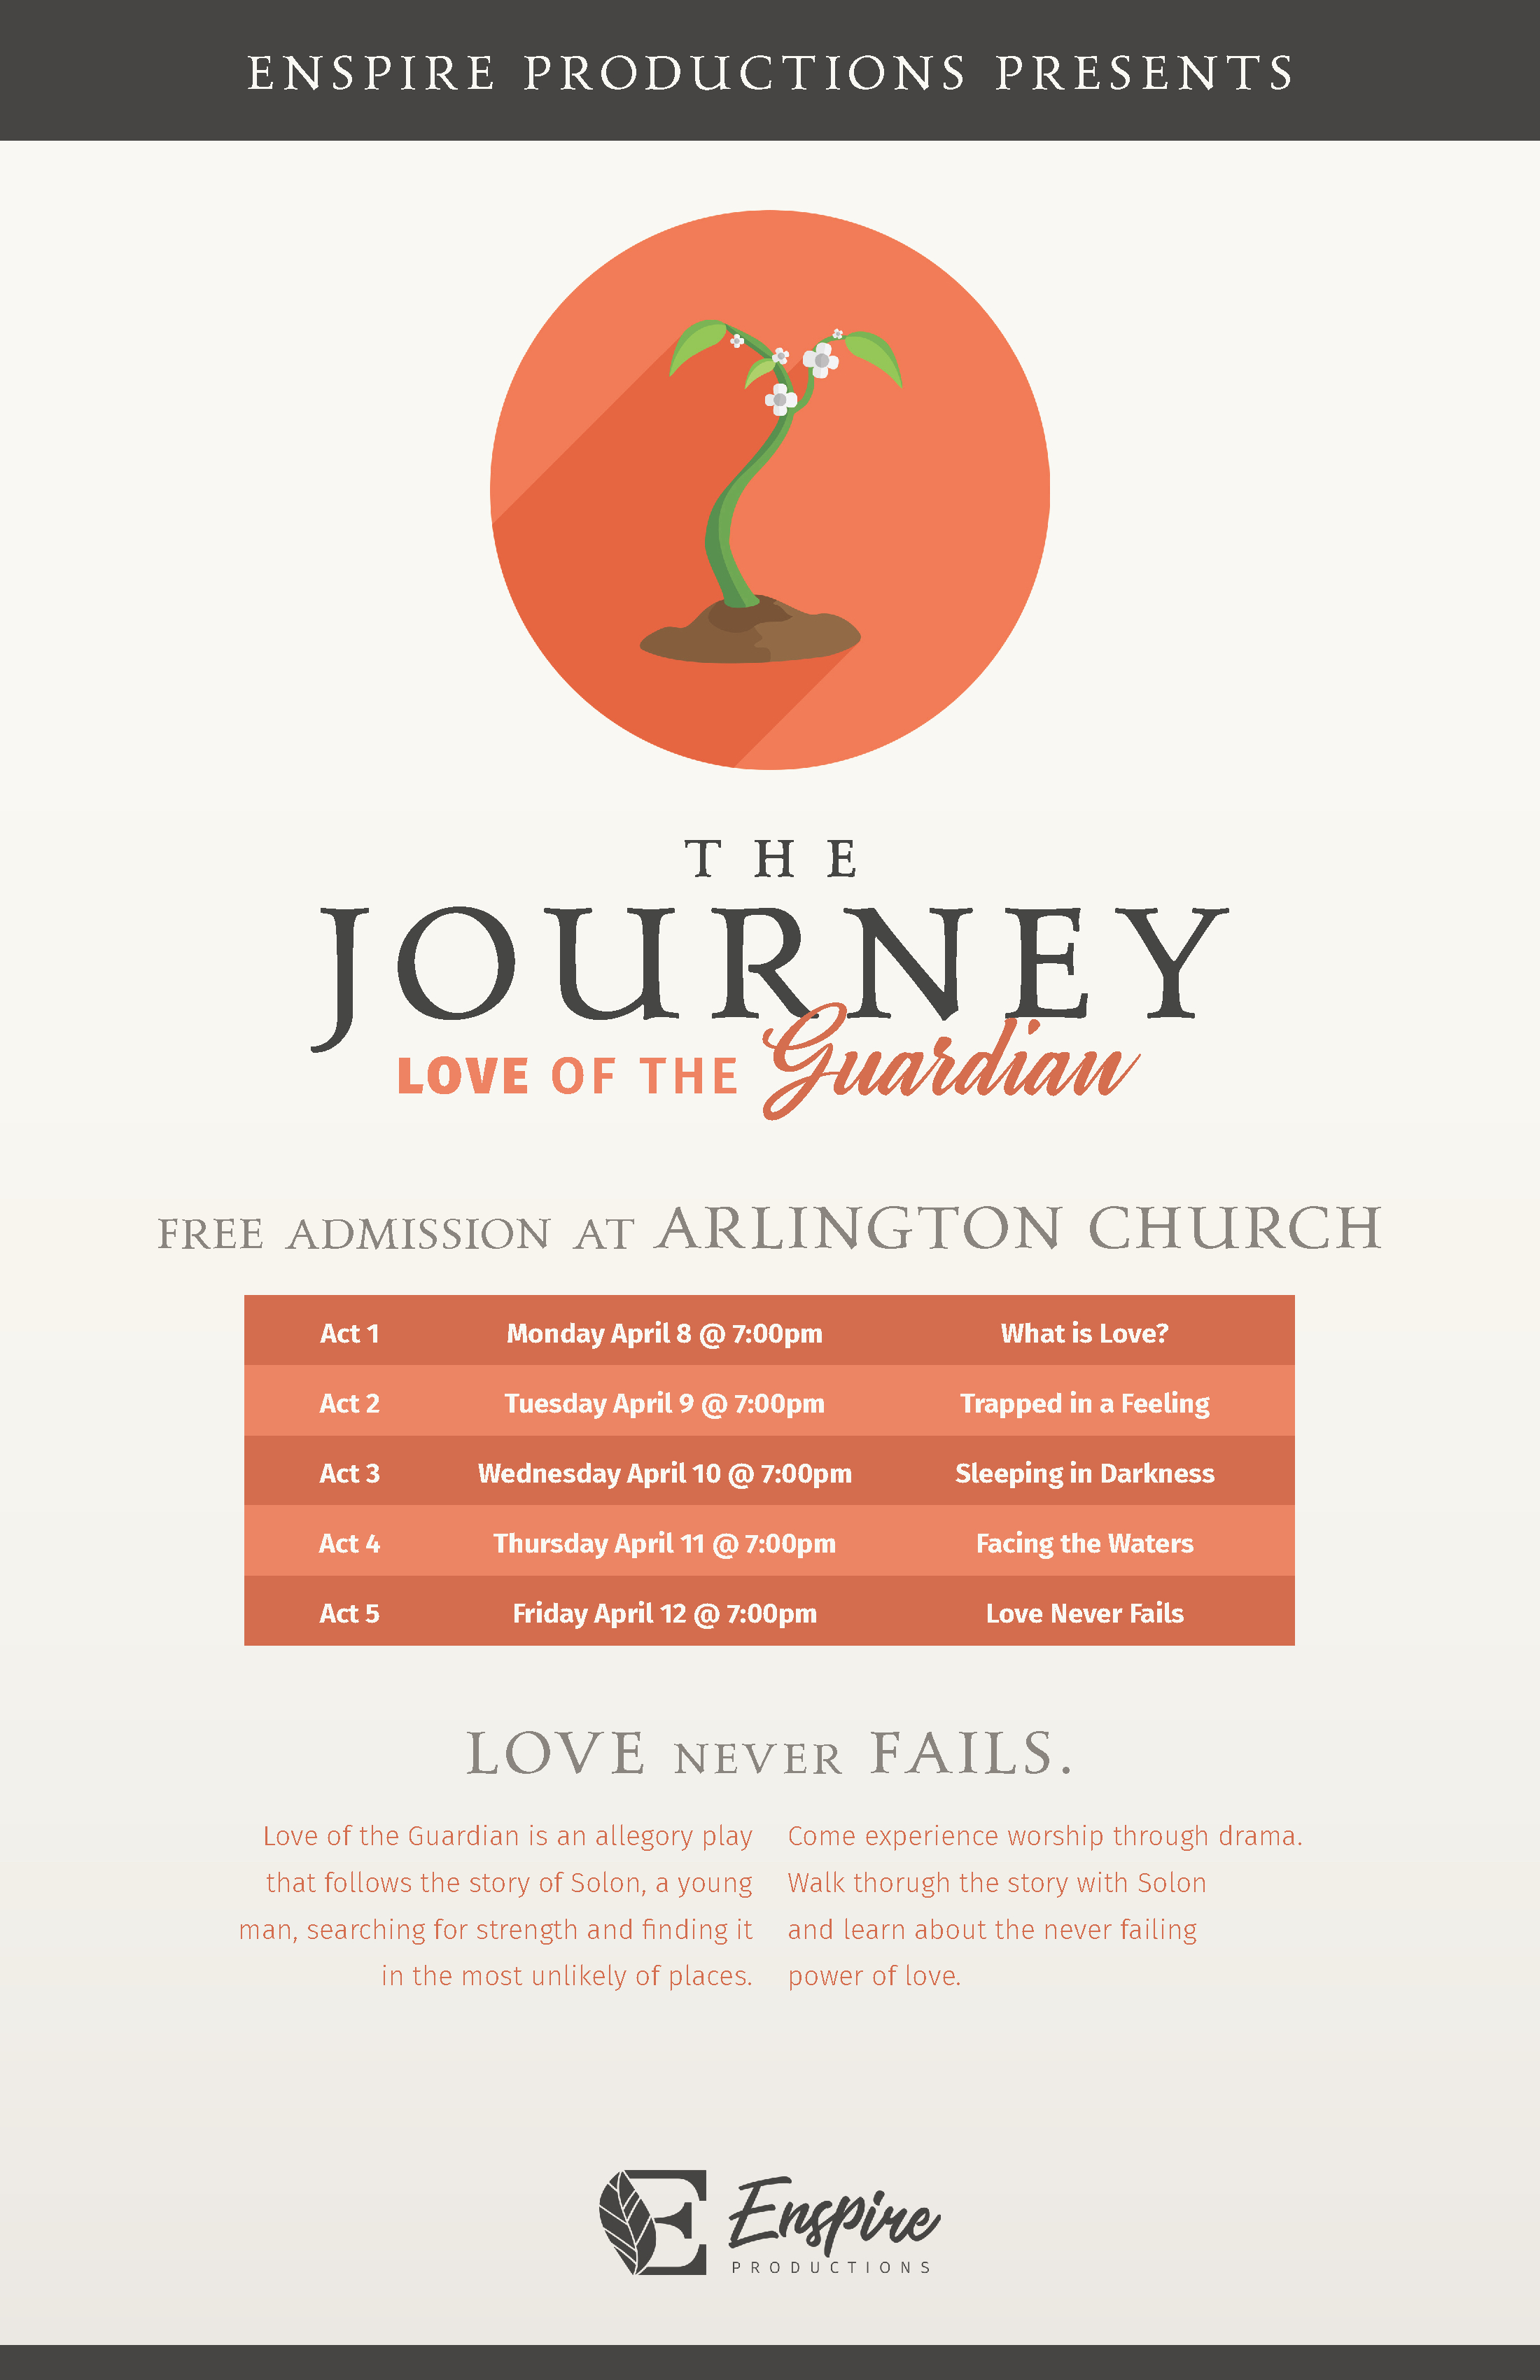 """THE JOURNEY: THE LOVE OF THE GUARDIAN   Burton Adventist Academy Drama in collaboration with Enspire Productions is excited to present their next theatrical production. Set in an allegorical world-   The Journey: The Love of the Guardian   explores the true meaning of love and sacrifice. Every evening, on April 8-12, at 7:00PM at the Arlington Seventh-day Adventist Church, 4409 Pleasantview Drive, Arlington, TX 76017, a different chapter of the story will be presented. Please join in this dramatic series exploring the great controversy and how humanity responds when asked the question, """"What is Love?"""""""